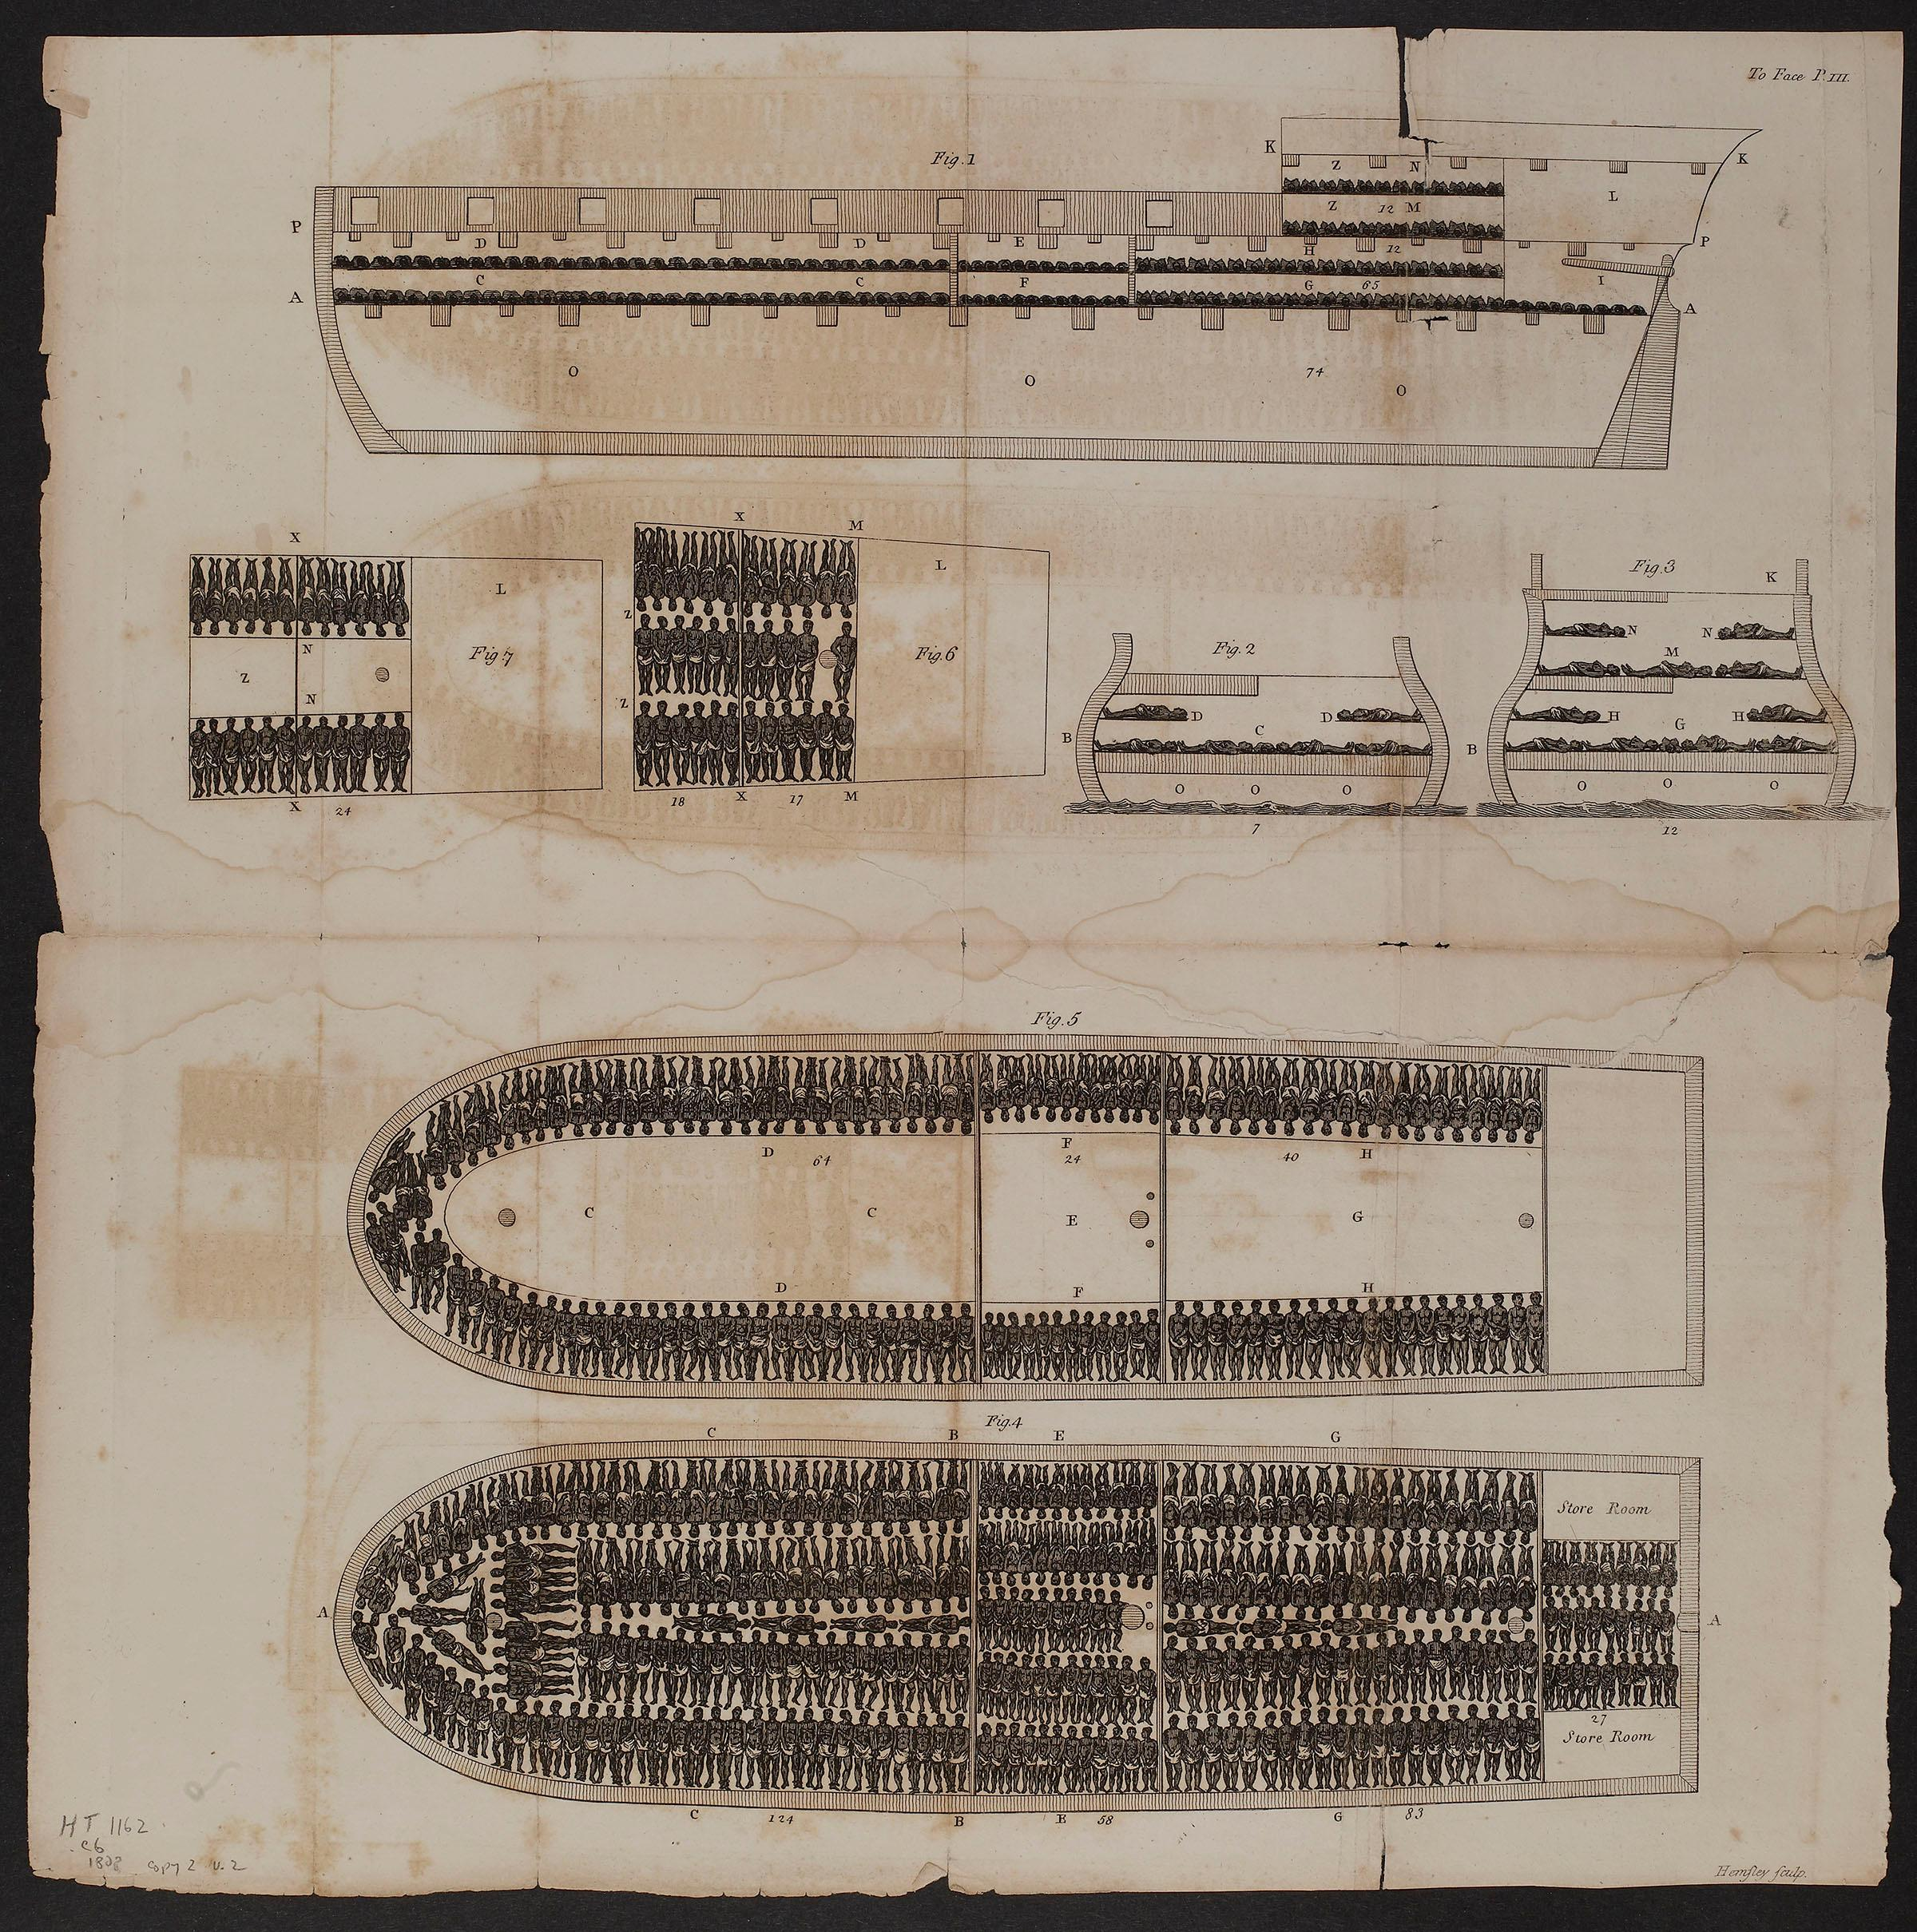 "Detail, ""Stowage of the British Slave Ship Brookes"" Thomas Clarkson, The History ... Of The African Slave-Trade, 1808 Albert and Shirley Small Special Collections Library, University of Virginia."